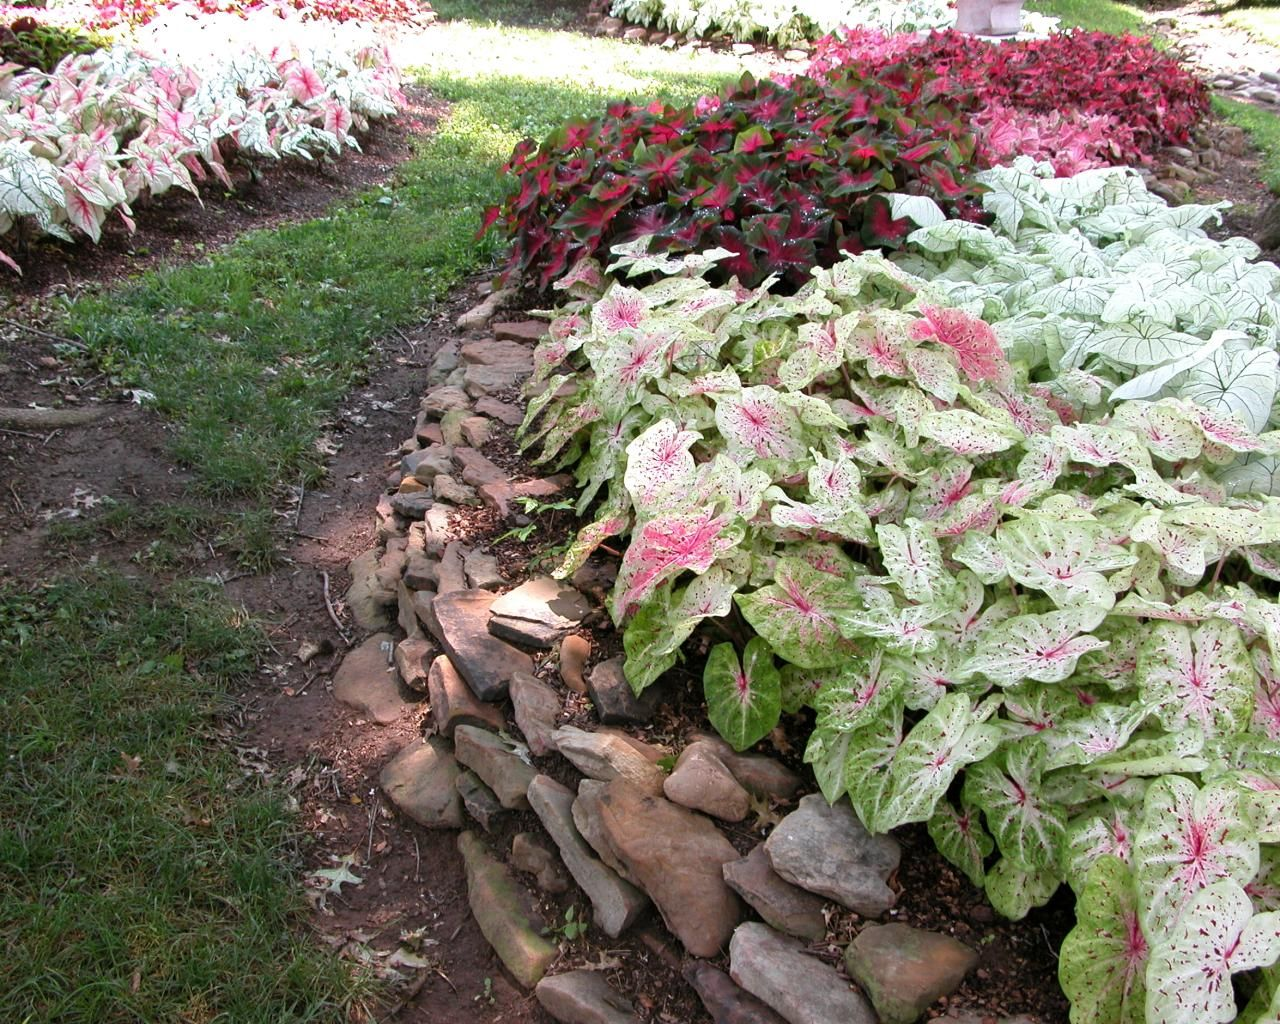 This summer bulb has a wide range of colors and performs well in the shade.